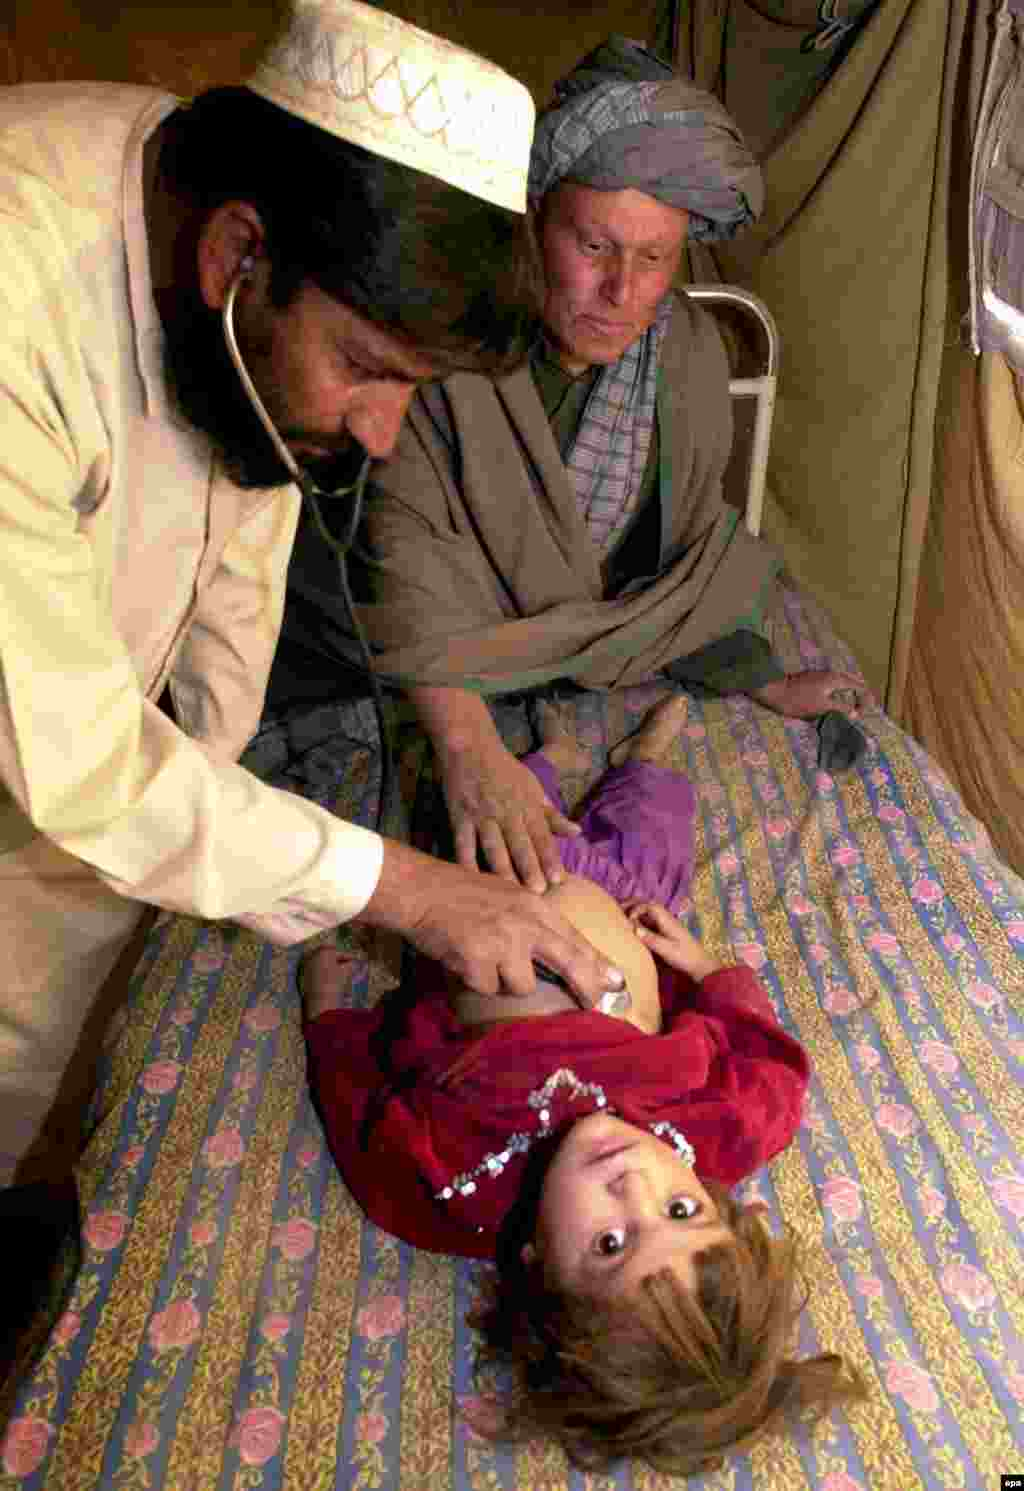 A doctor attends to a sick child who is among the displaced persons in the Afghan border town of Spin Boldak - In 2001, the UN said that more than 3 million Afghan refugees were either in camps (1.2 million) or cities and towns (2 million) throughout Pakistan.